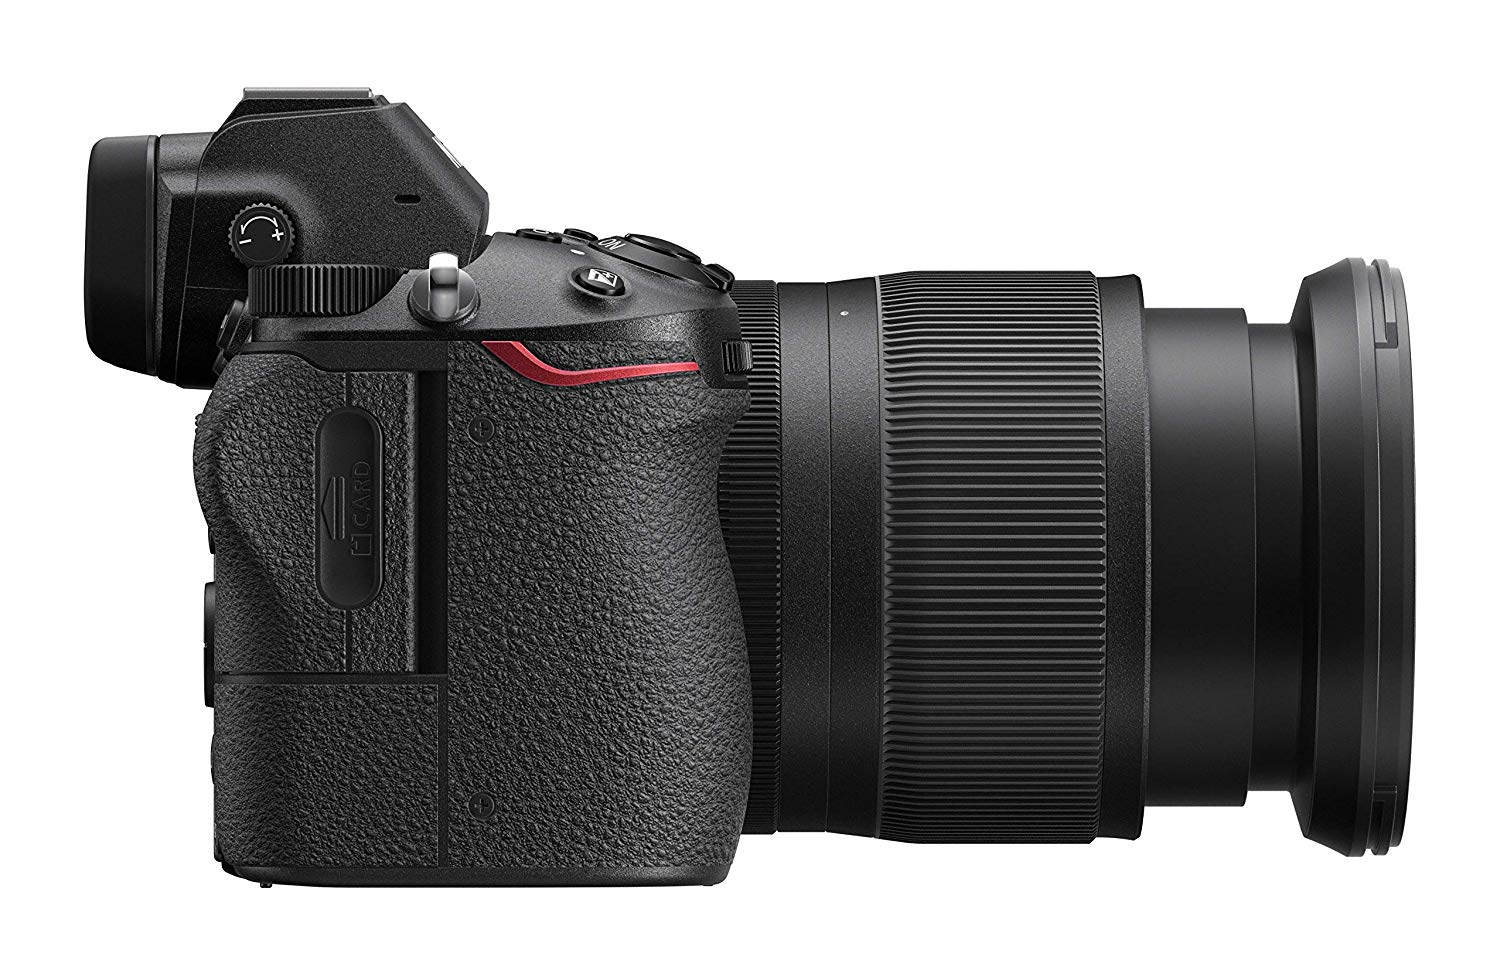 nikon z7 features image